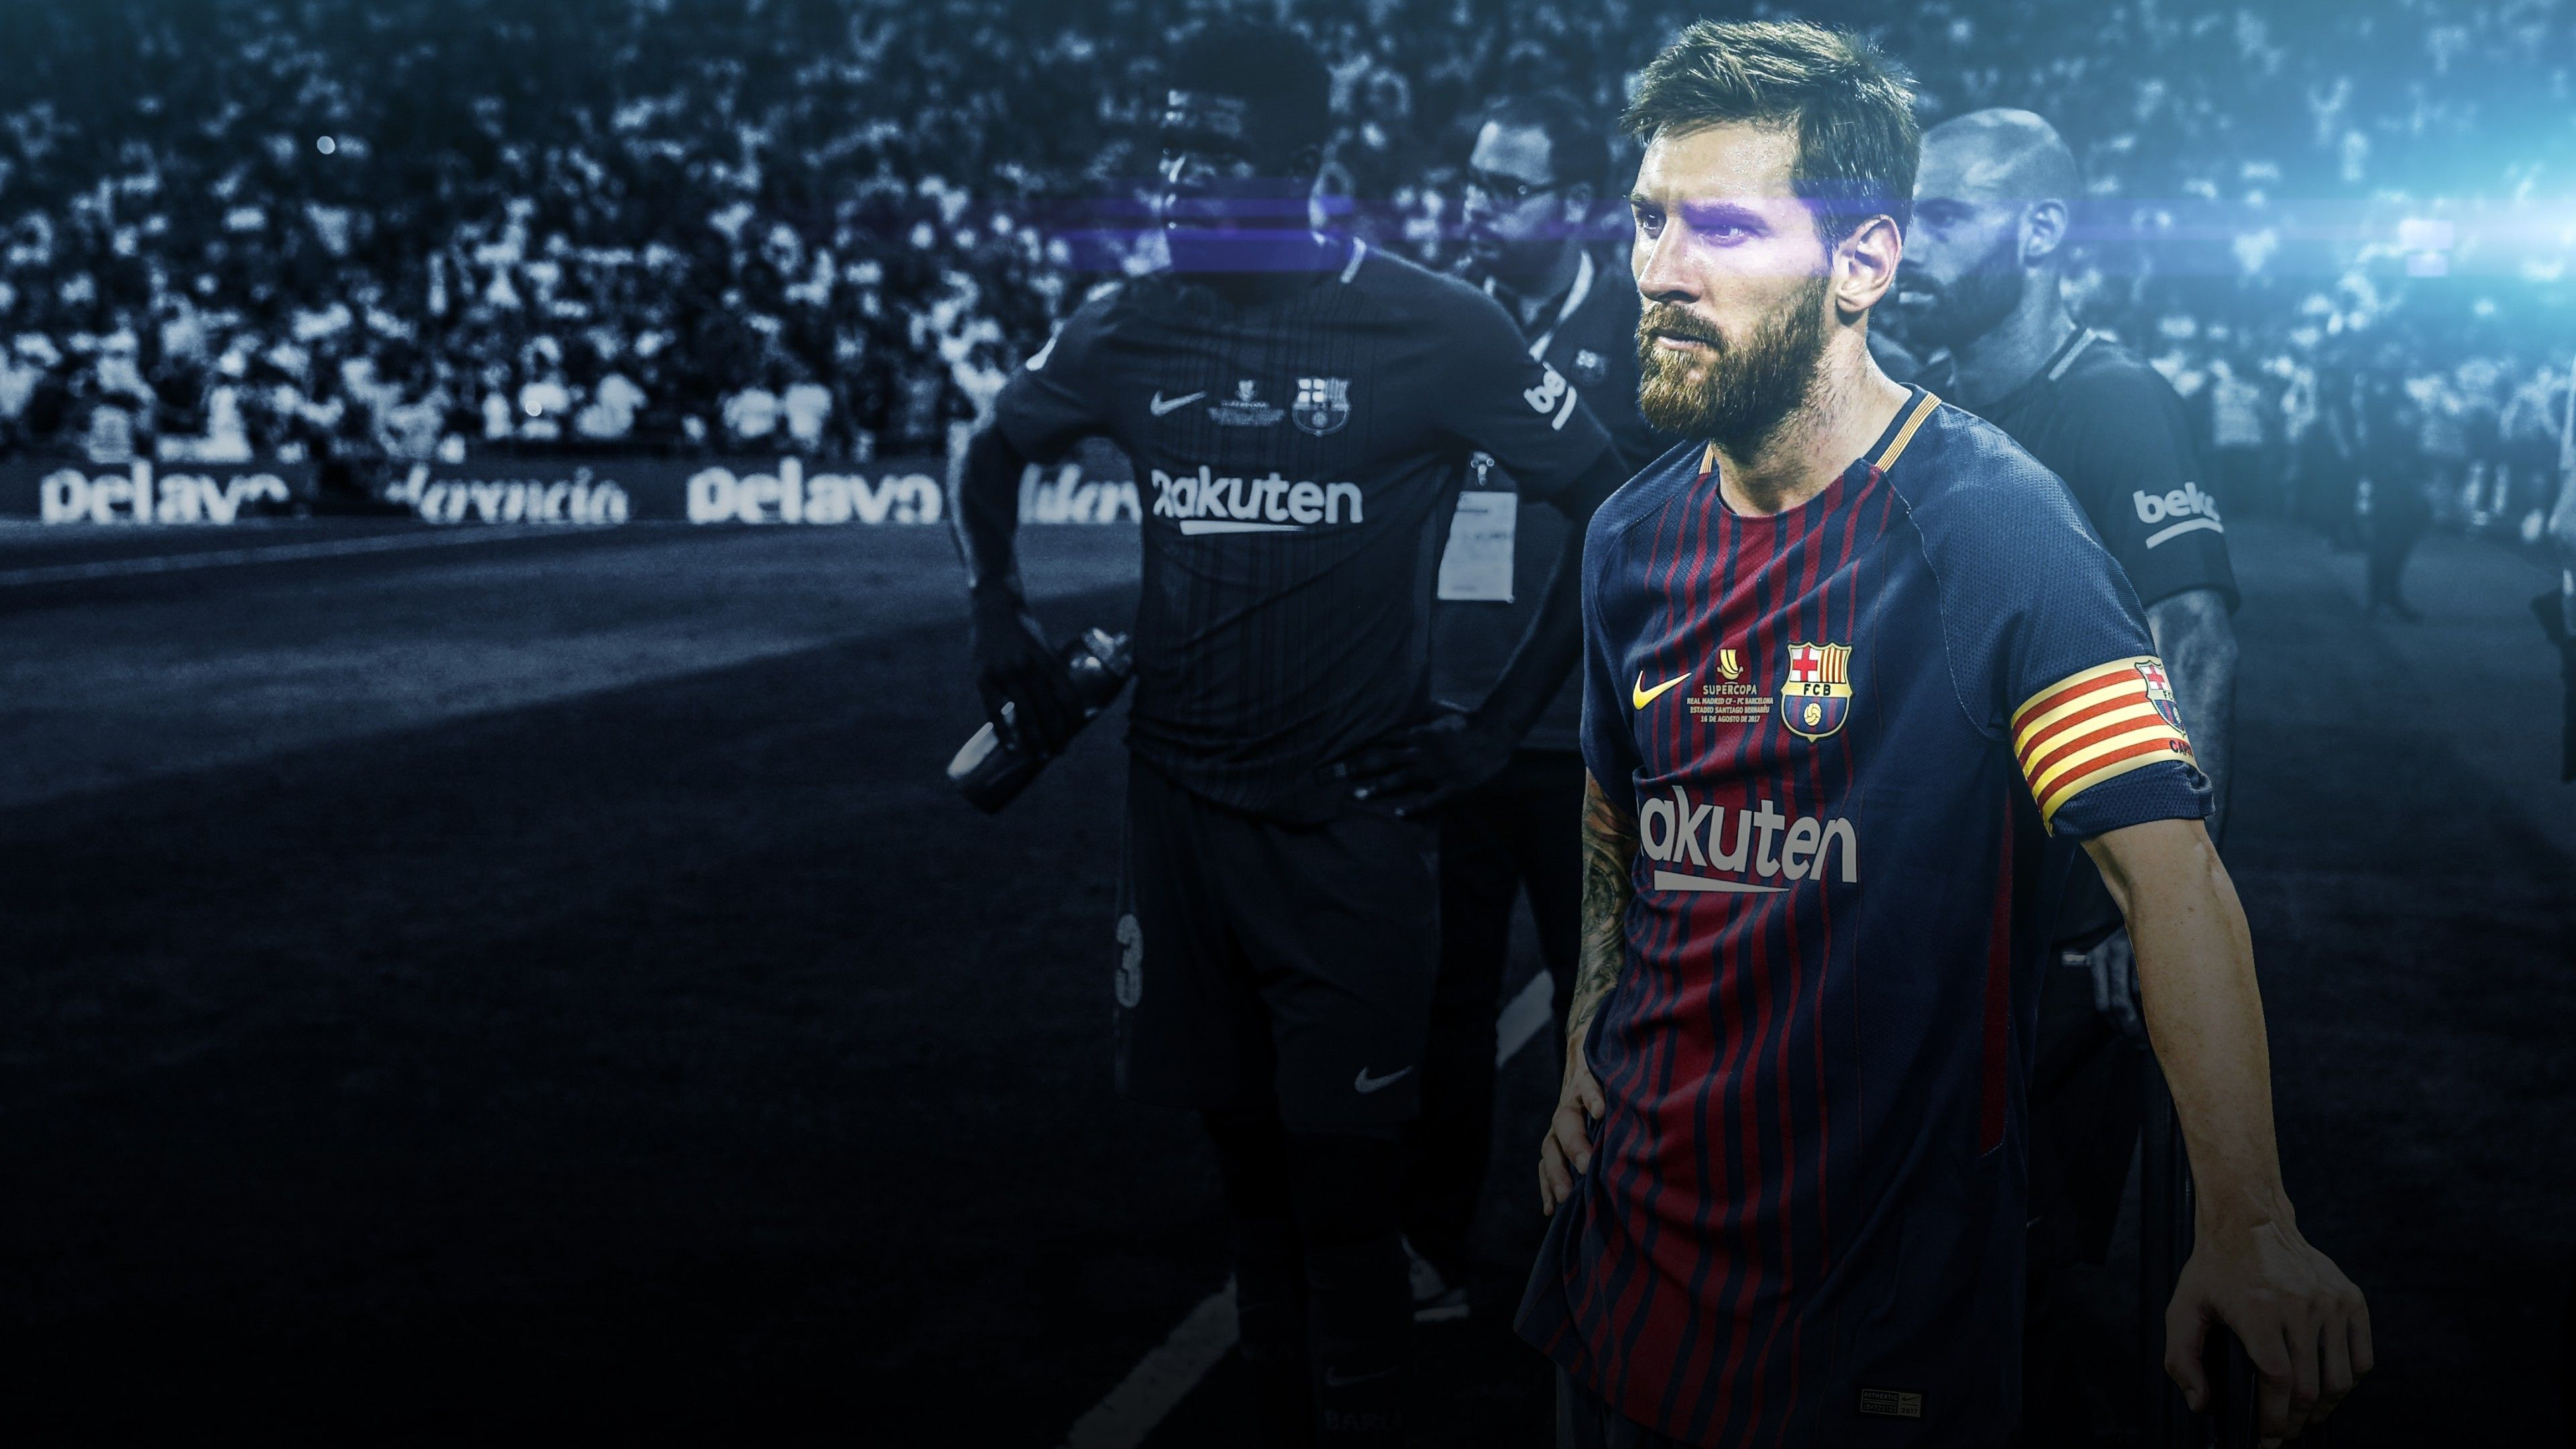 Wallpaper Lionel Messi, Fc Barcelona, Fcb, 4k, Sports, - Lionel Messi Wallpapers 2018 , HD Wallpaper & Backgrounds